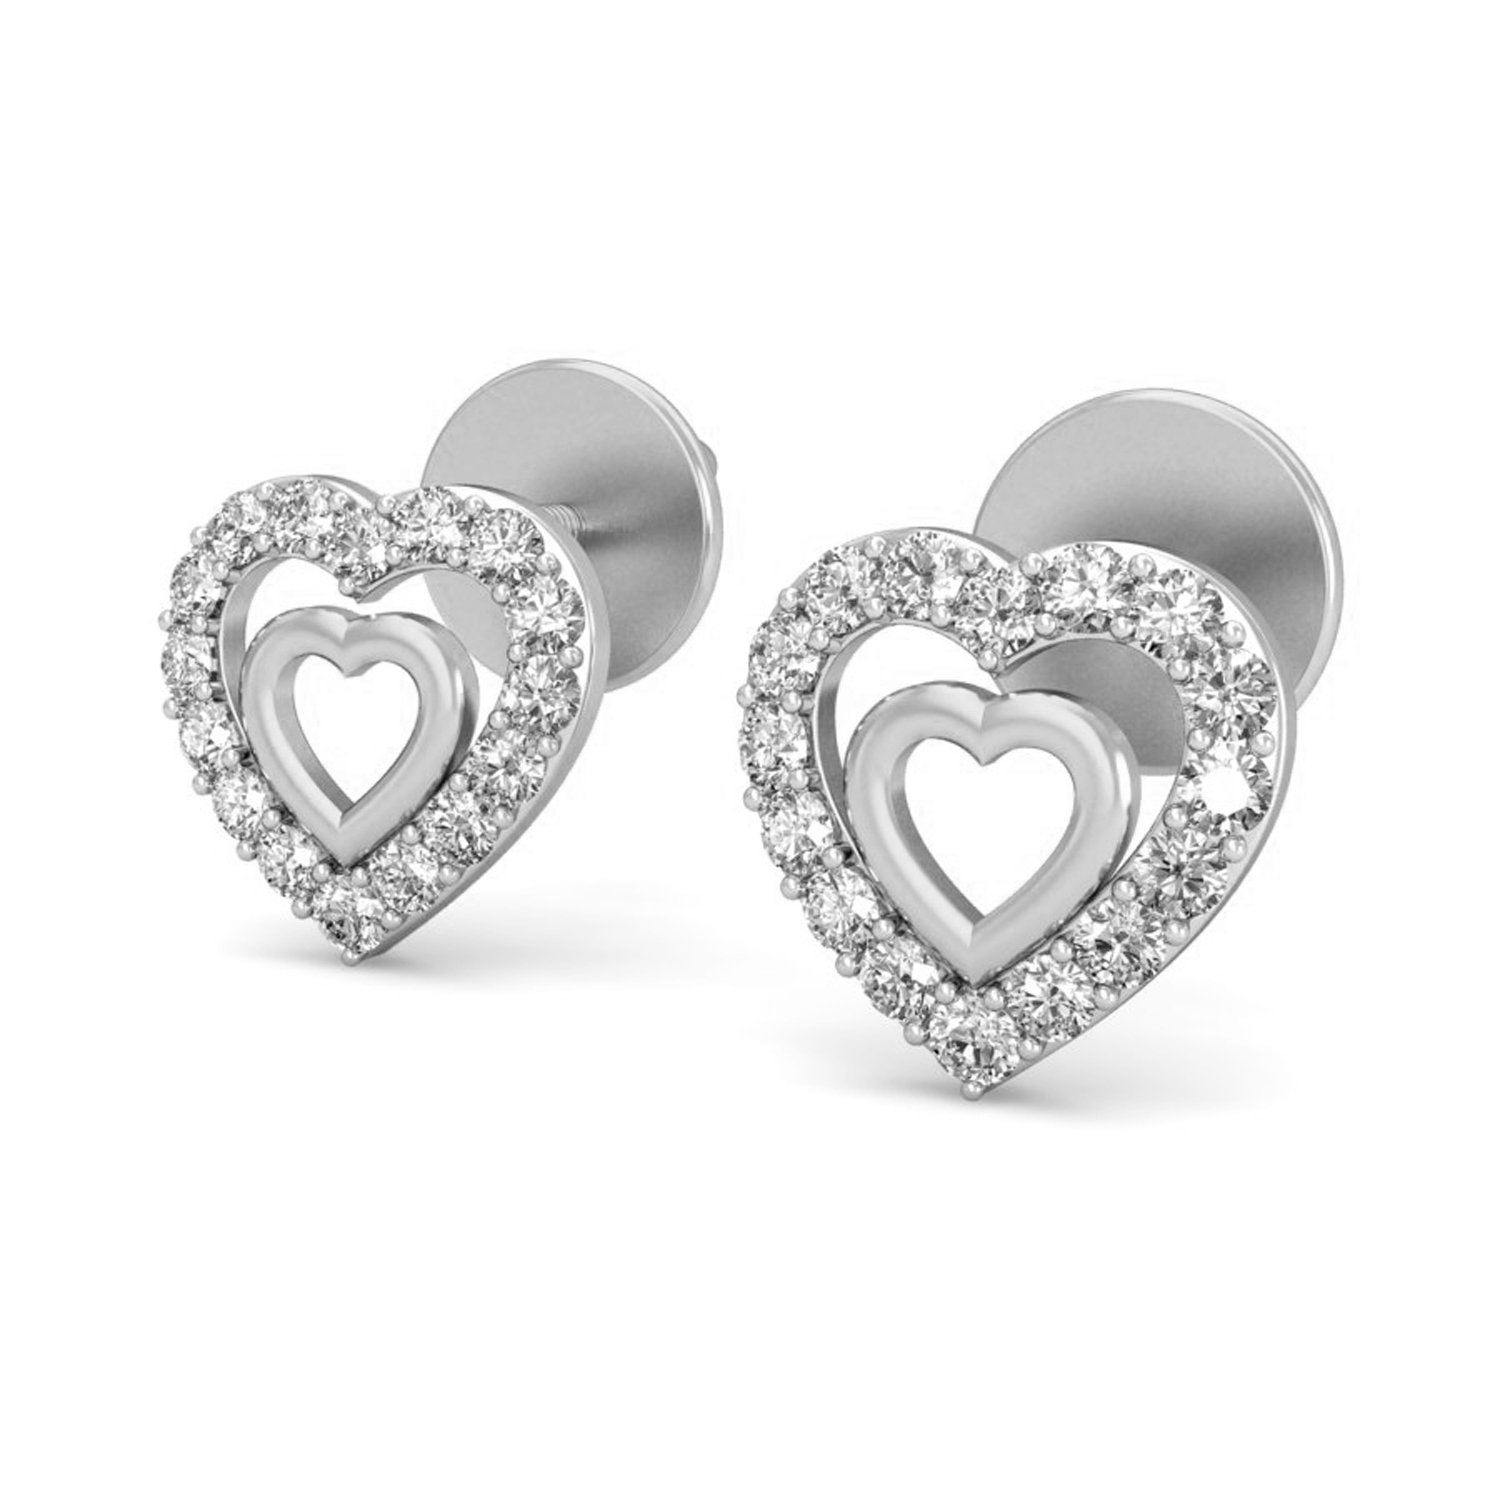 diamond stud earrings product shaped heart com bestdiamondprice